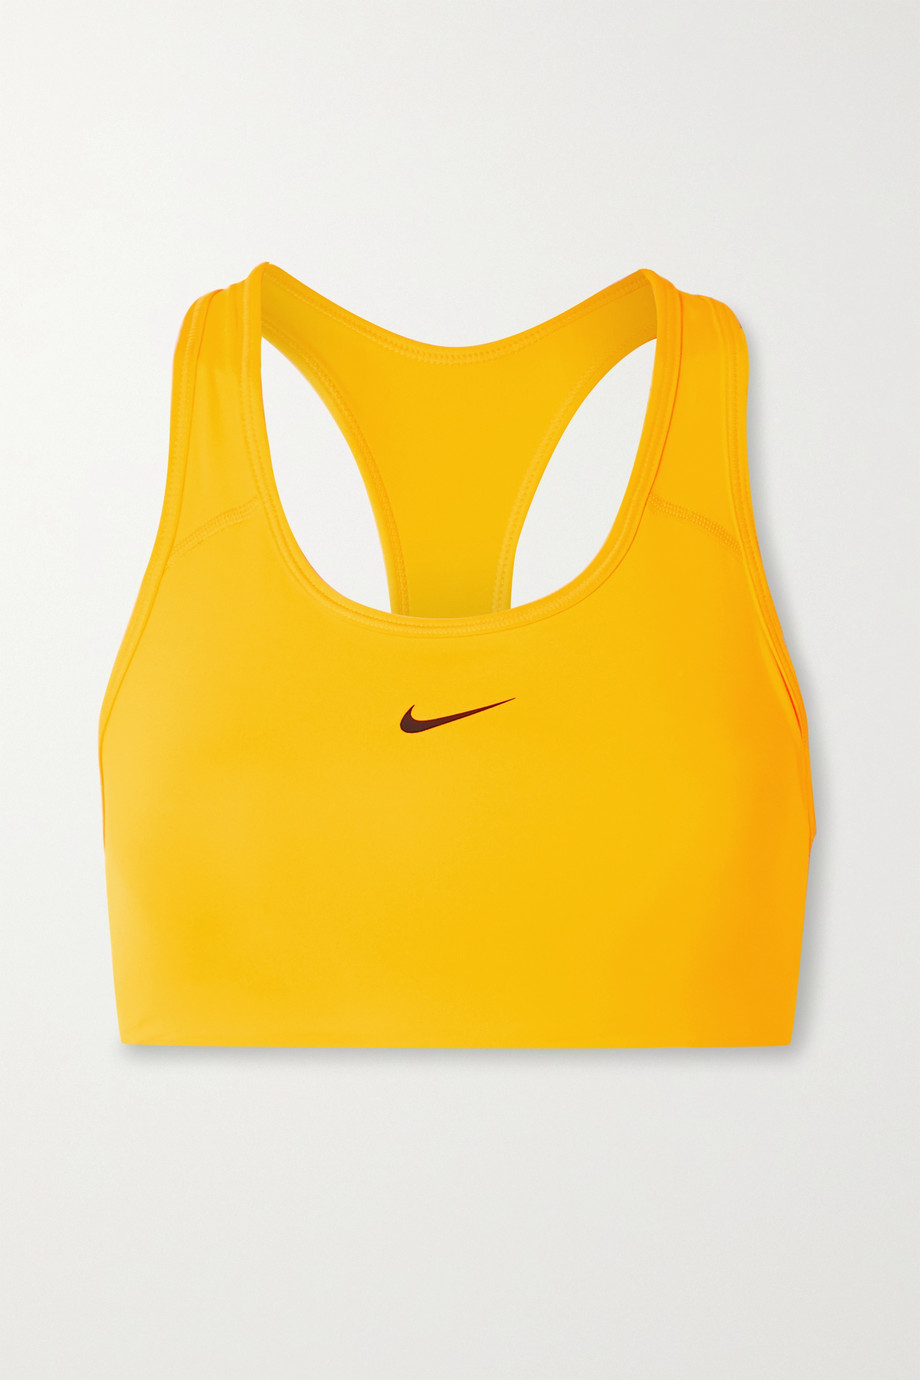 Nike + NET SUSTAIN Swoosh Dri-FIT stretch sports bra